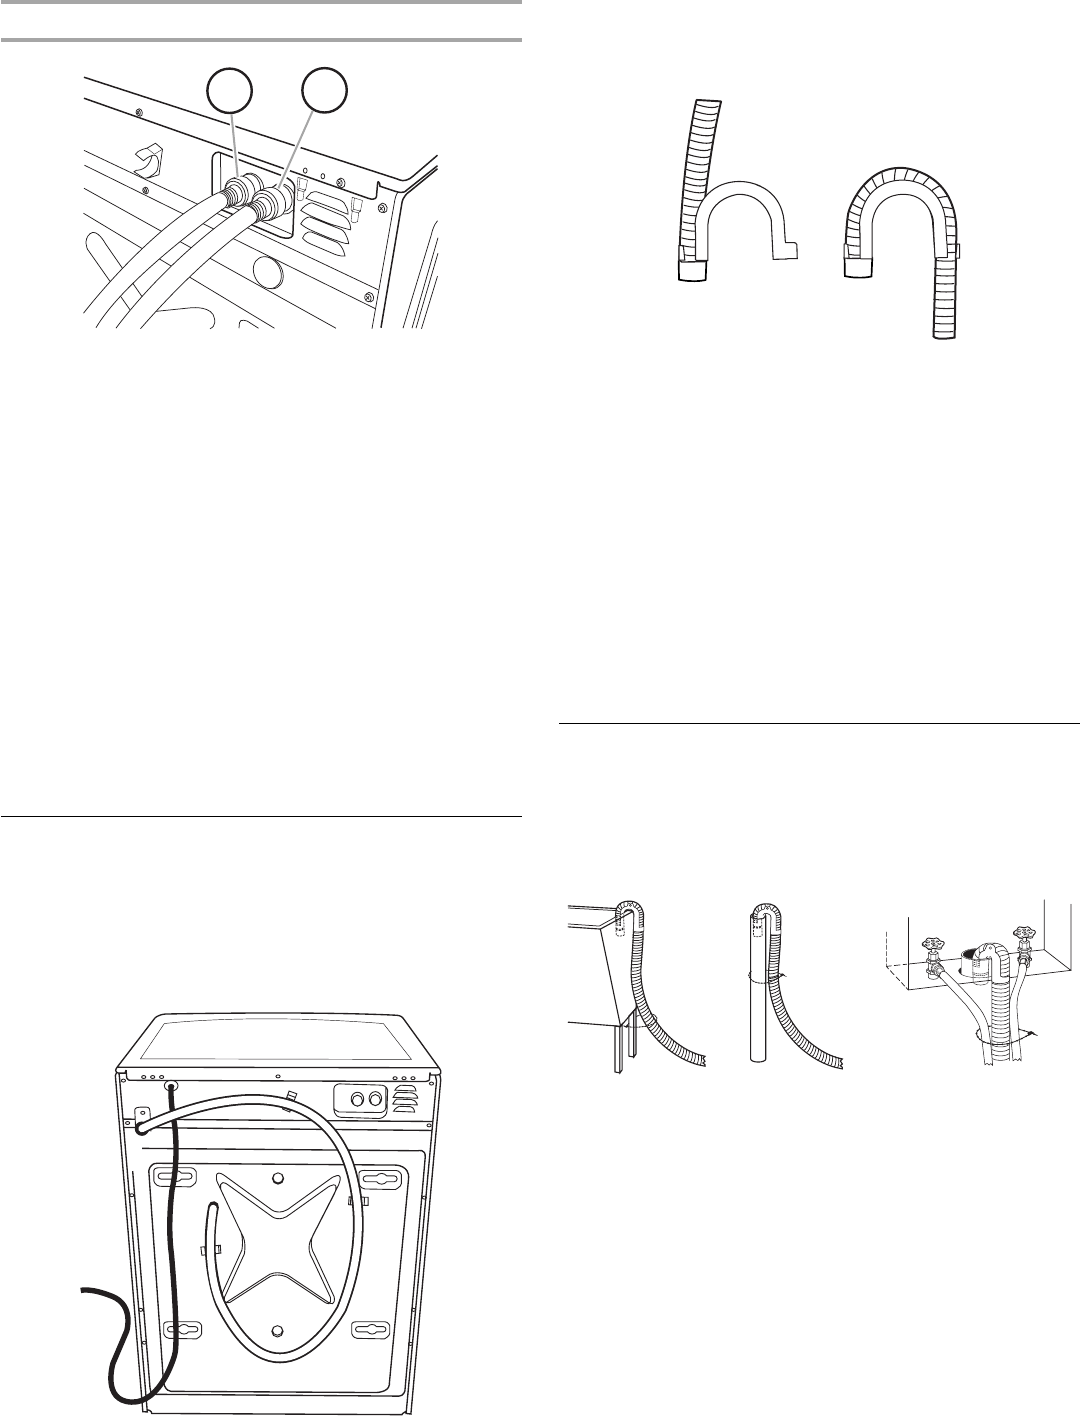 Page 62 of Kenmore Washer 110.4751 User Guide